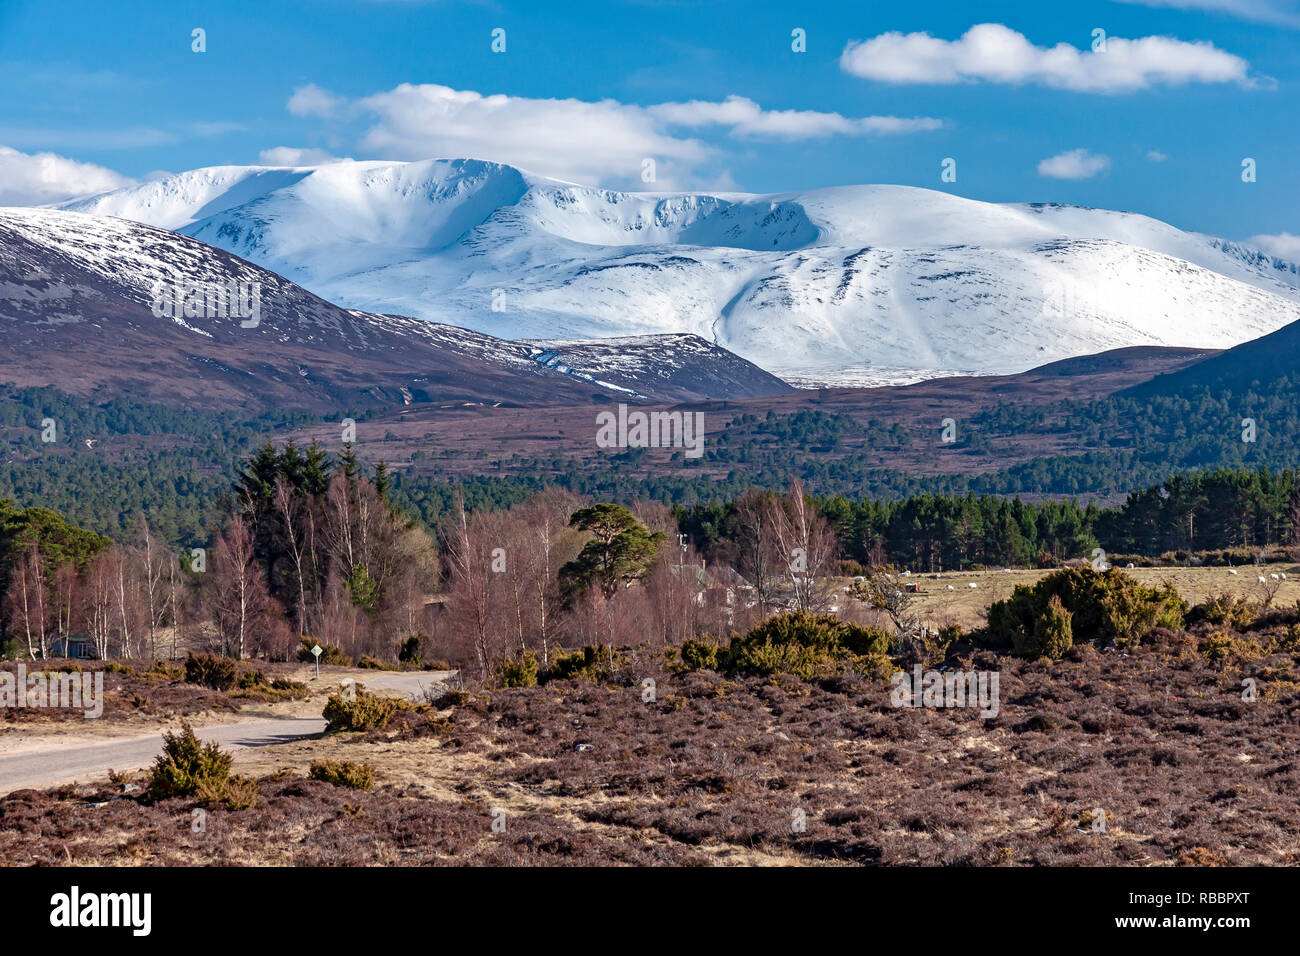 Snow clad Scottish mountain Braeriach in the Cairngorms National Park seen from  Rothiemurchus Highland Scotland with birch & pine trees in front - Stock Image